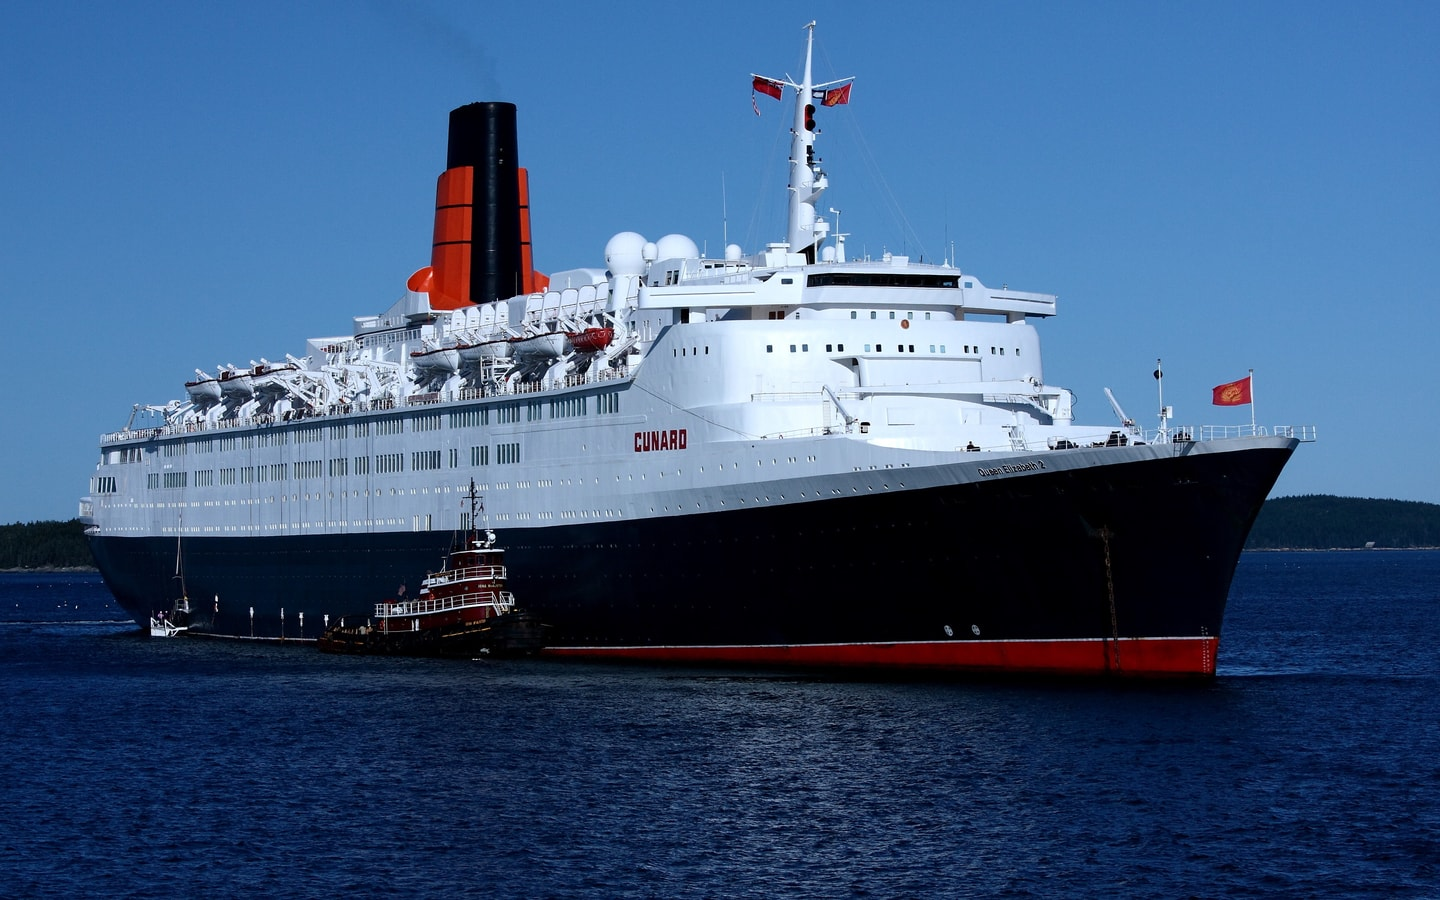 Get married on the QE2